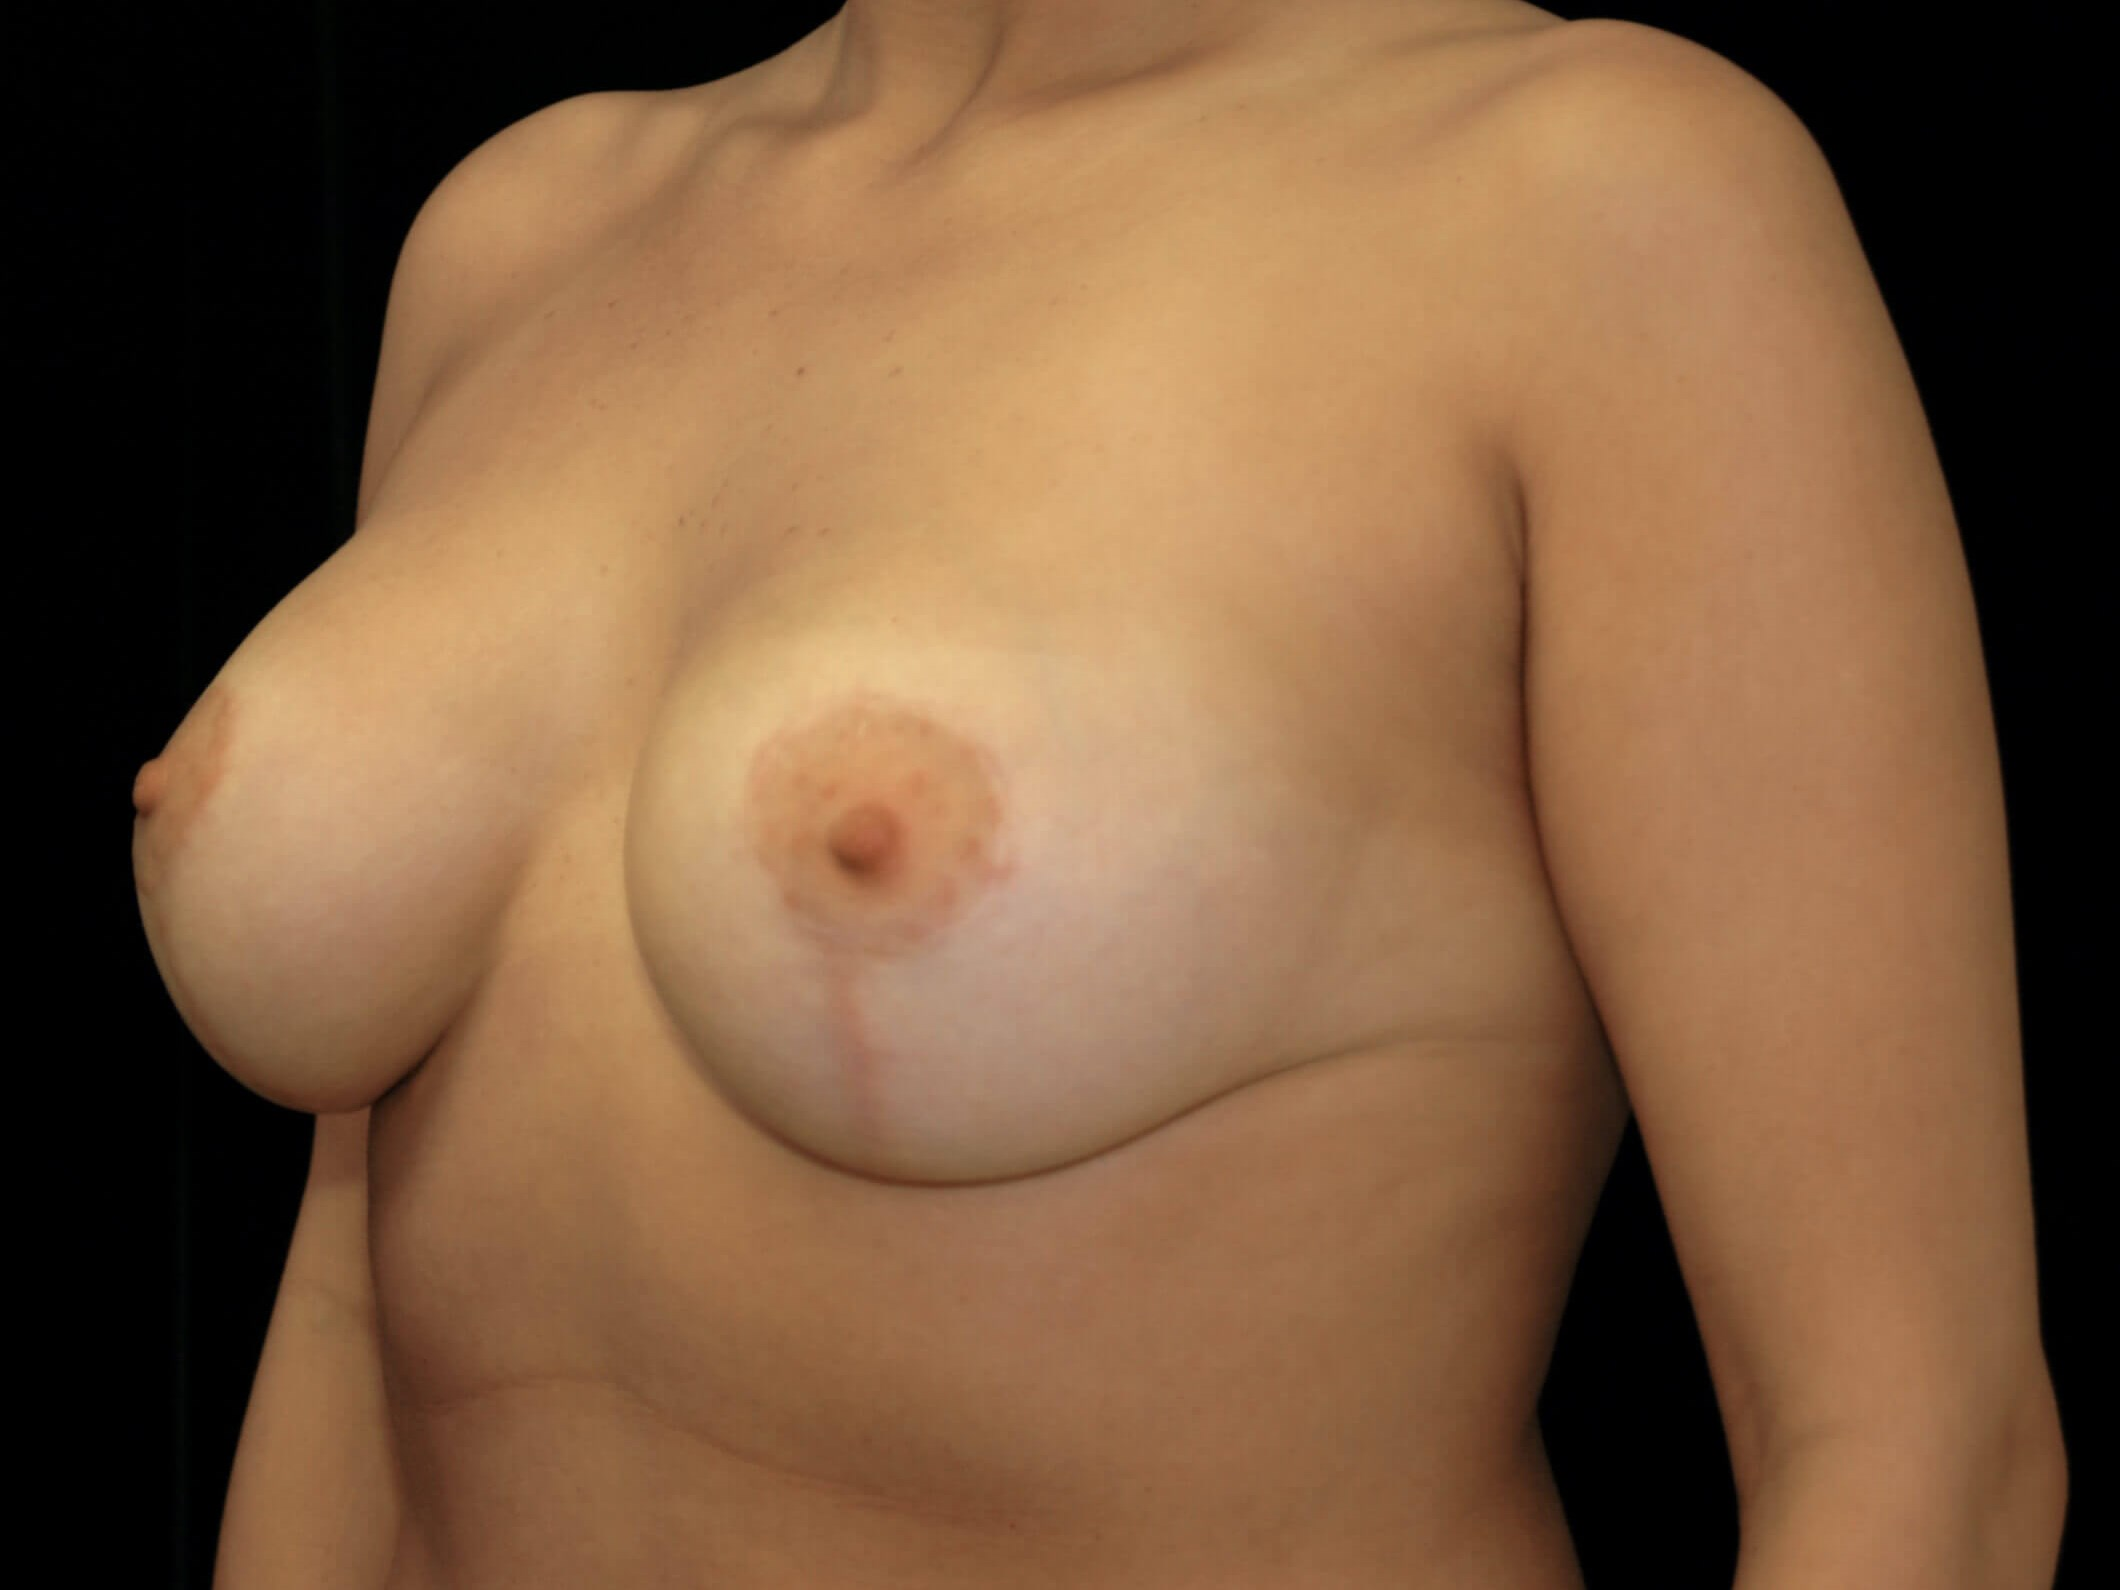 DALLAS, TEXAS WOMAN HAS BREAST AUGMENTATION AND LIFT WITH SILICONE GEL IMPLANTS